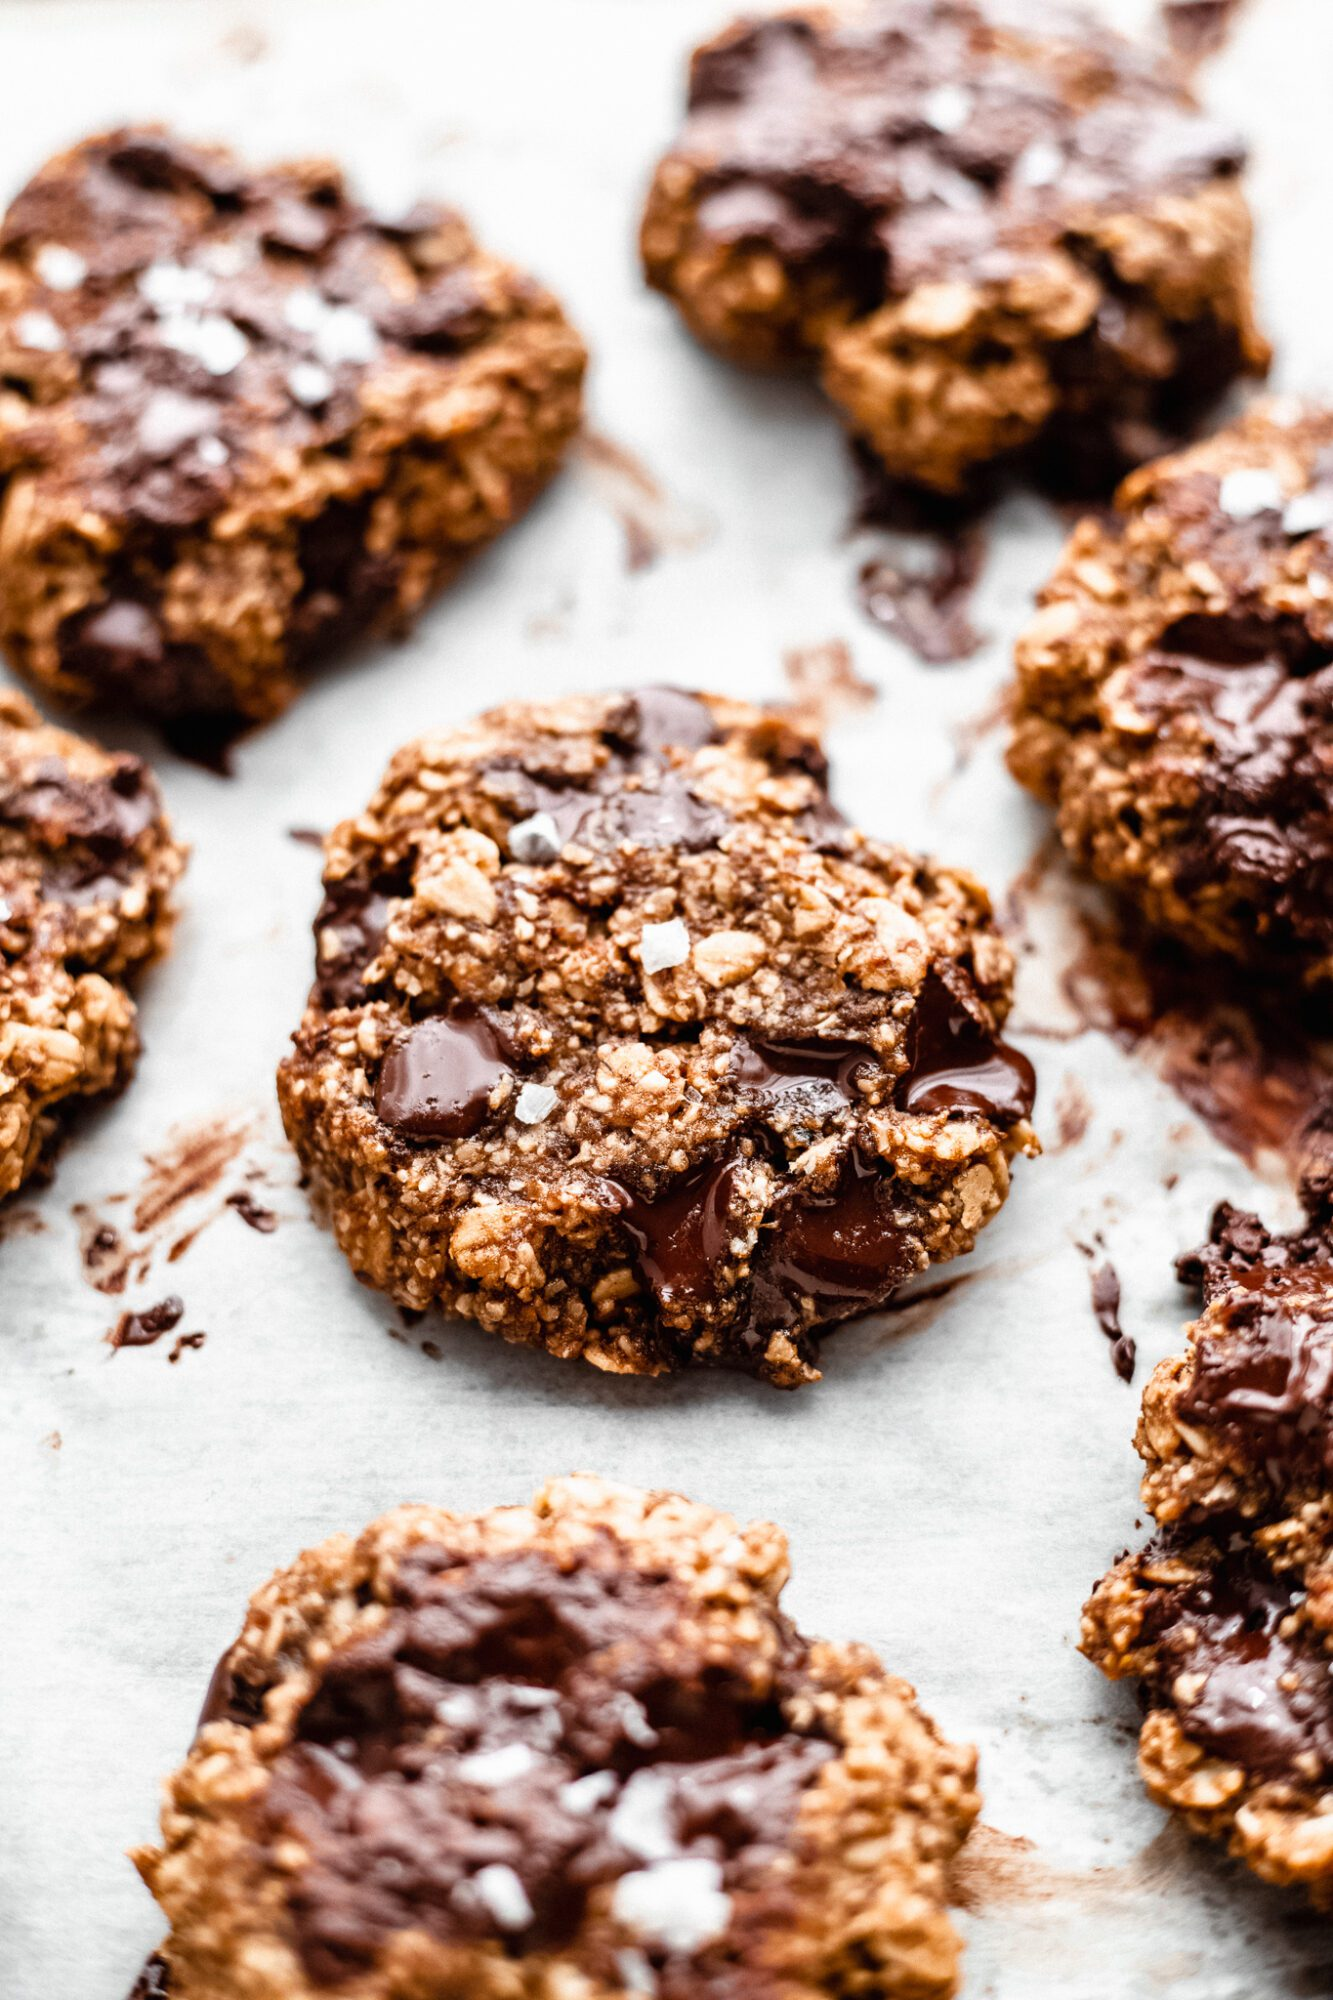 gluten free vegan chocolate chip oatmeal cookies on parchment paper